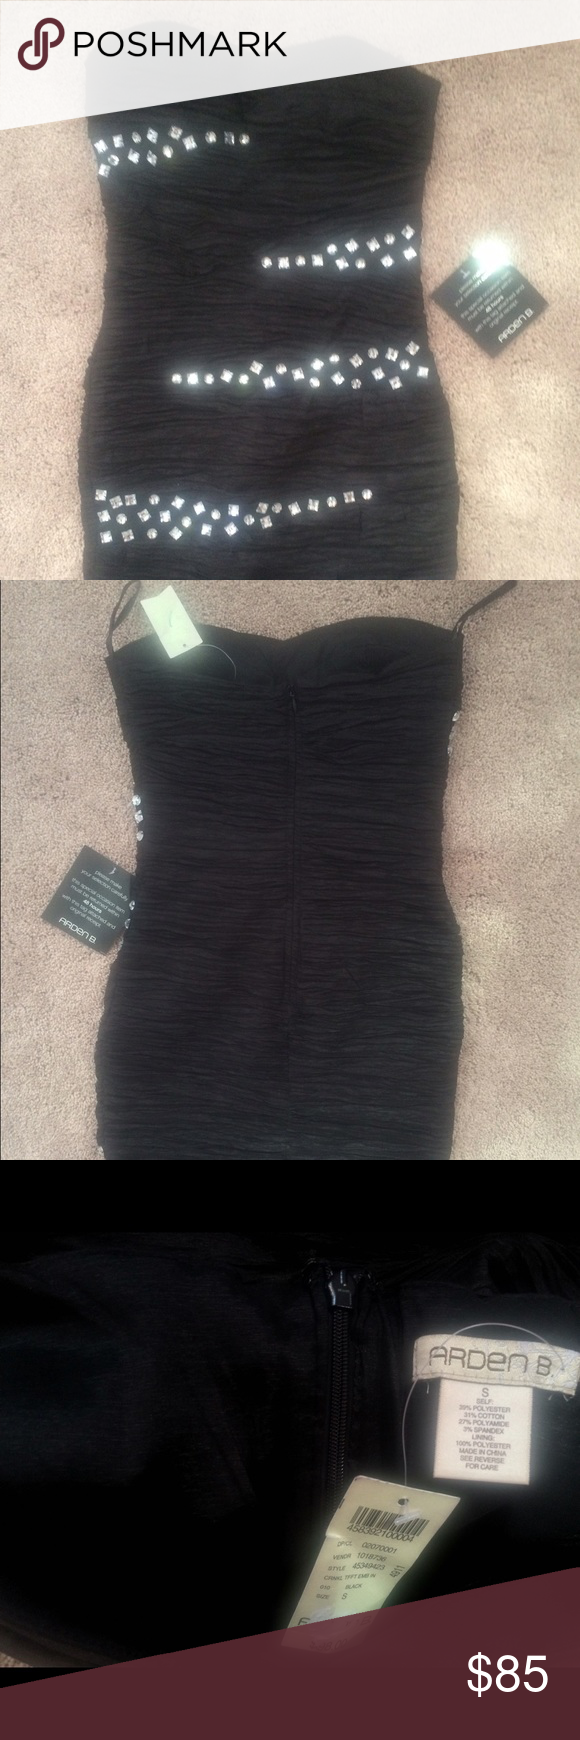 Bebe Black stretch dress Brand new black stretch dress with Crystals. Fits like a glove. Never worn. Tags still on. Bought 2 diff sizes so need to sell this one. bebe Dresses